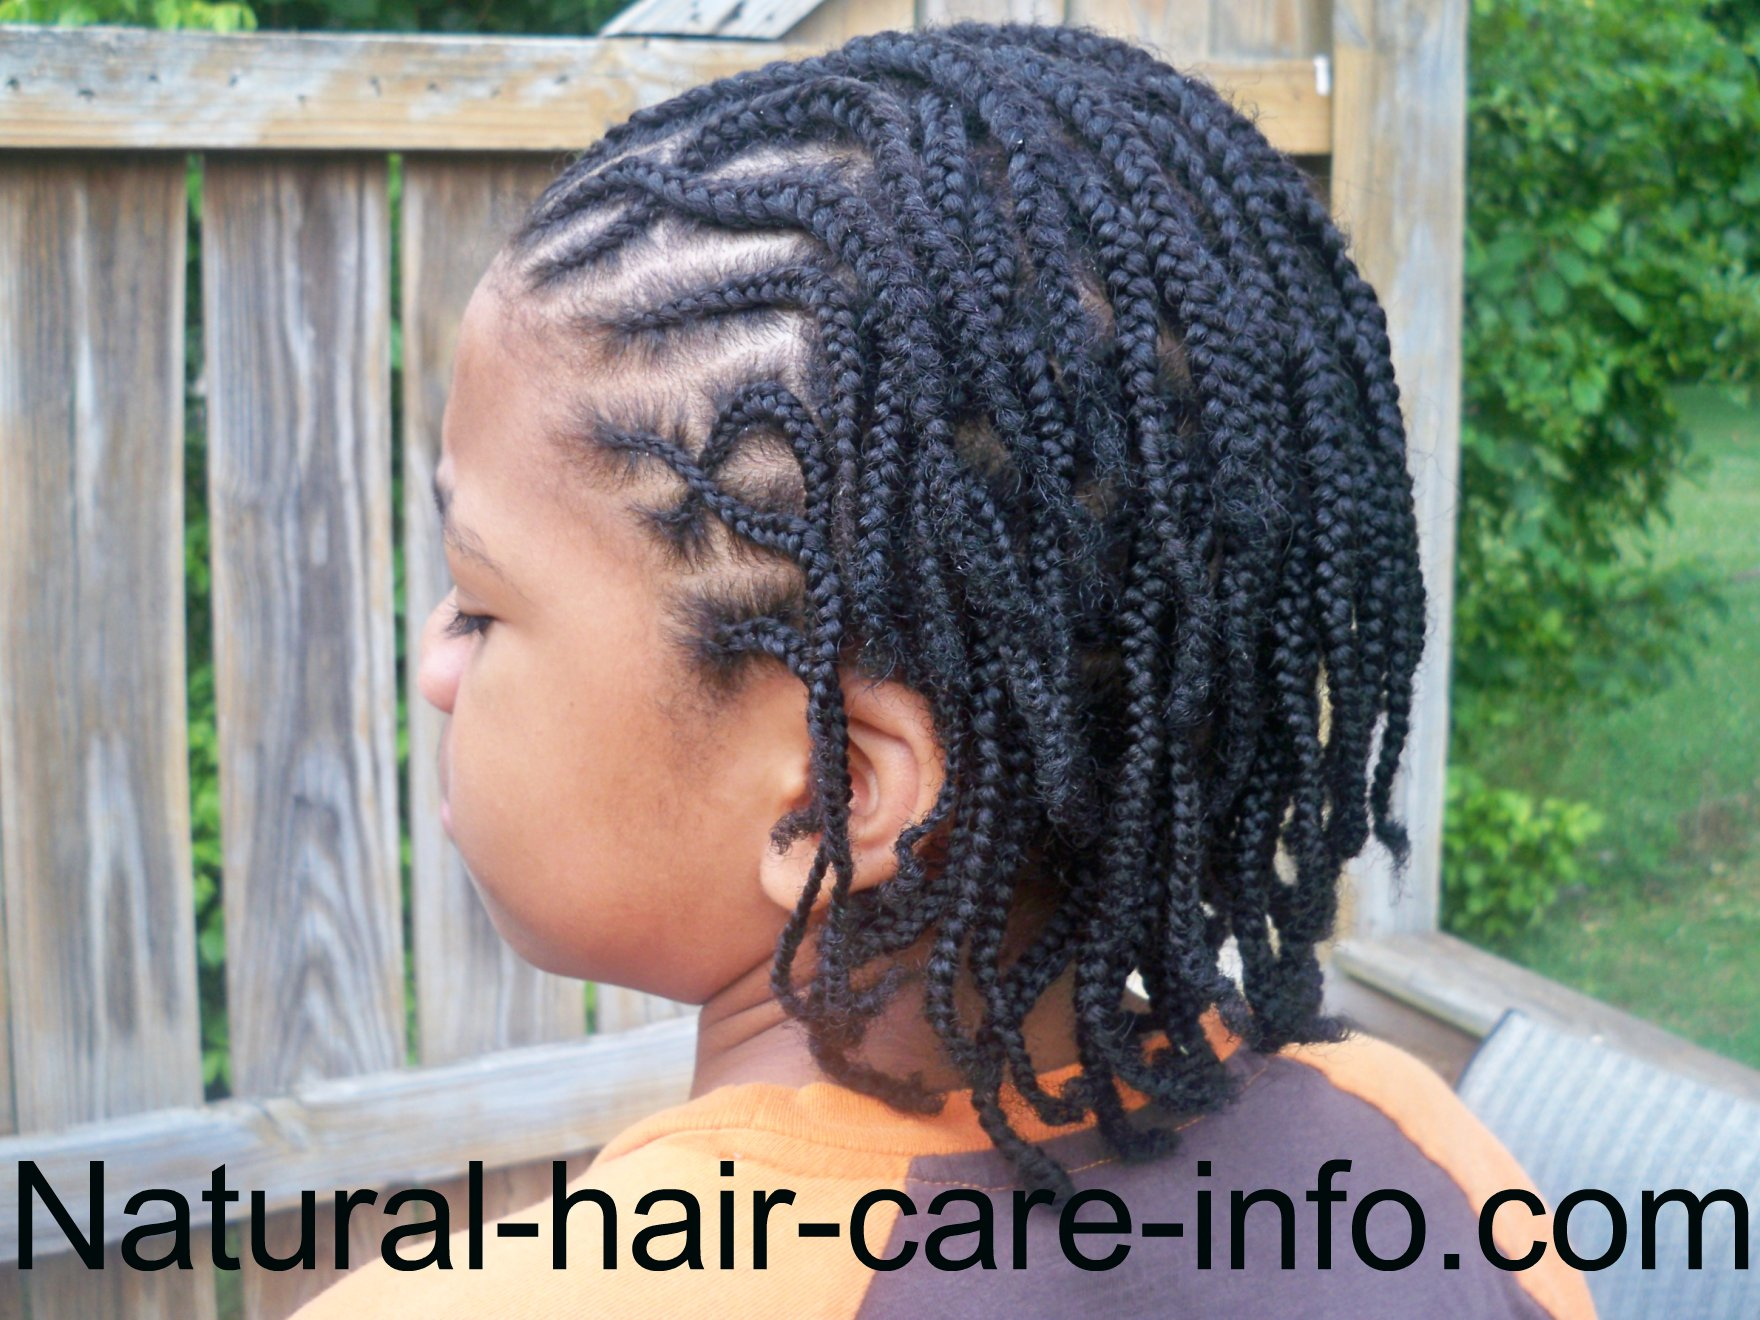 Incredible Braid Hairstyles For Men Complete List And Tutorials Hairstyles For Men Maxibearus